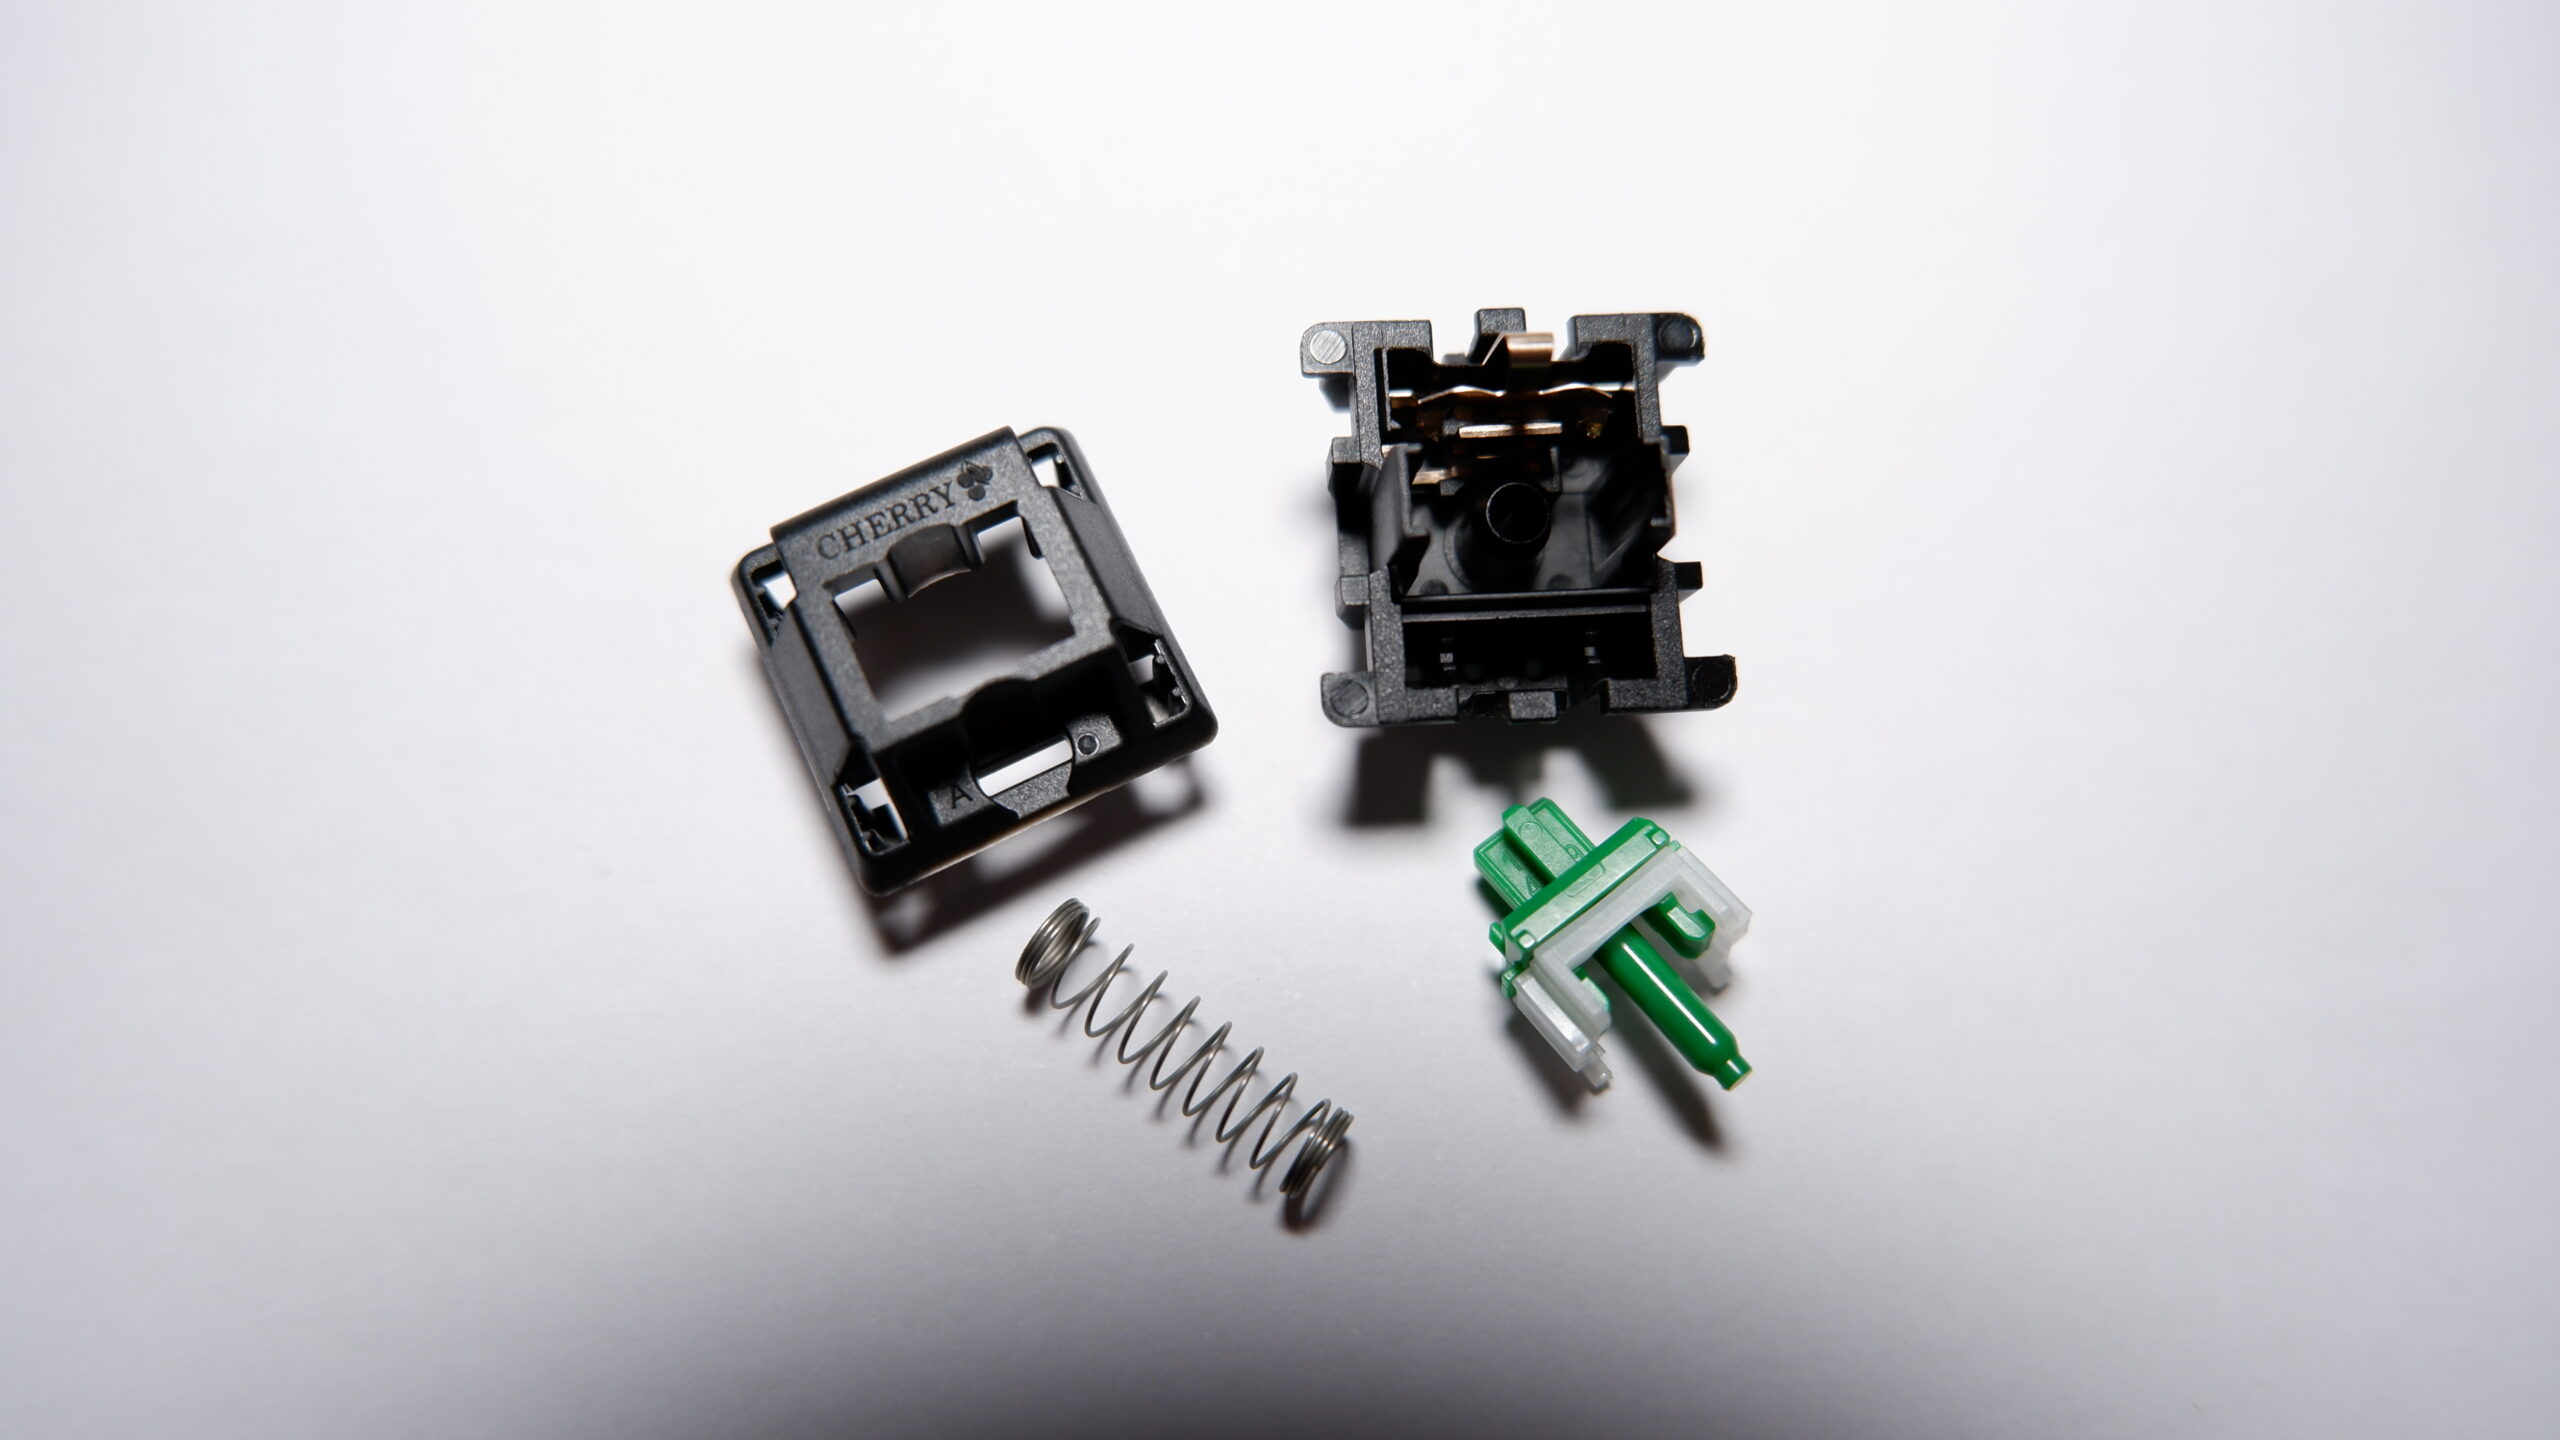 Cherry MX Green switch disassembled